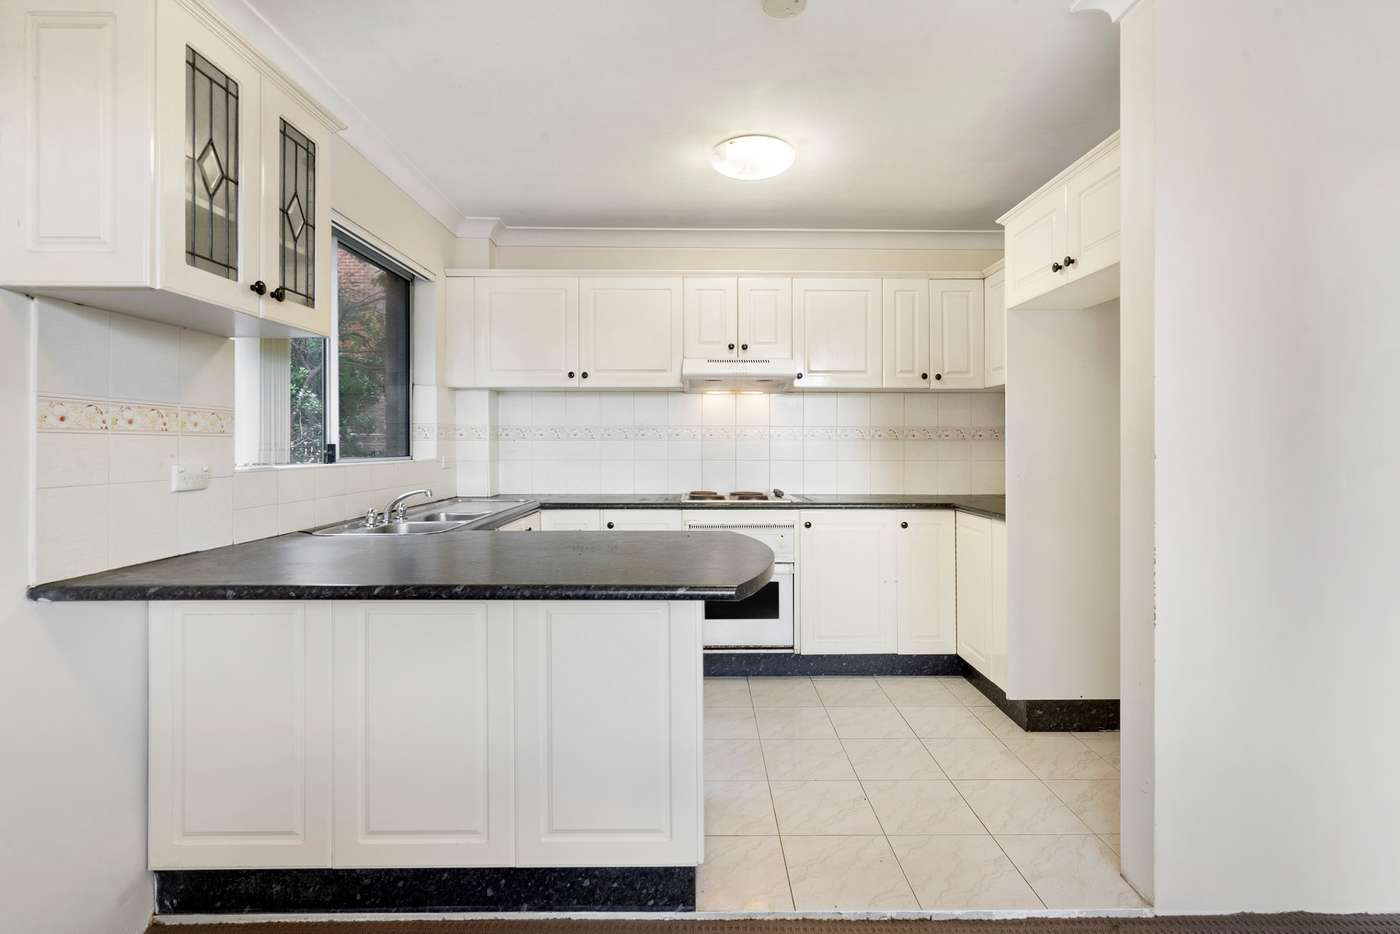 Main view of Homely apartment listing, 4/21-23 Early Street, Parramatta NSW 2150